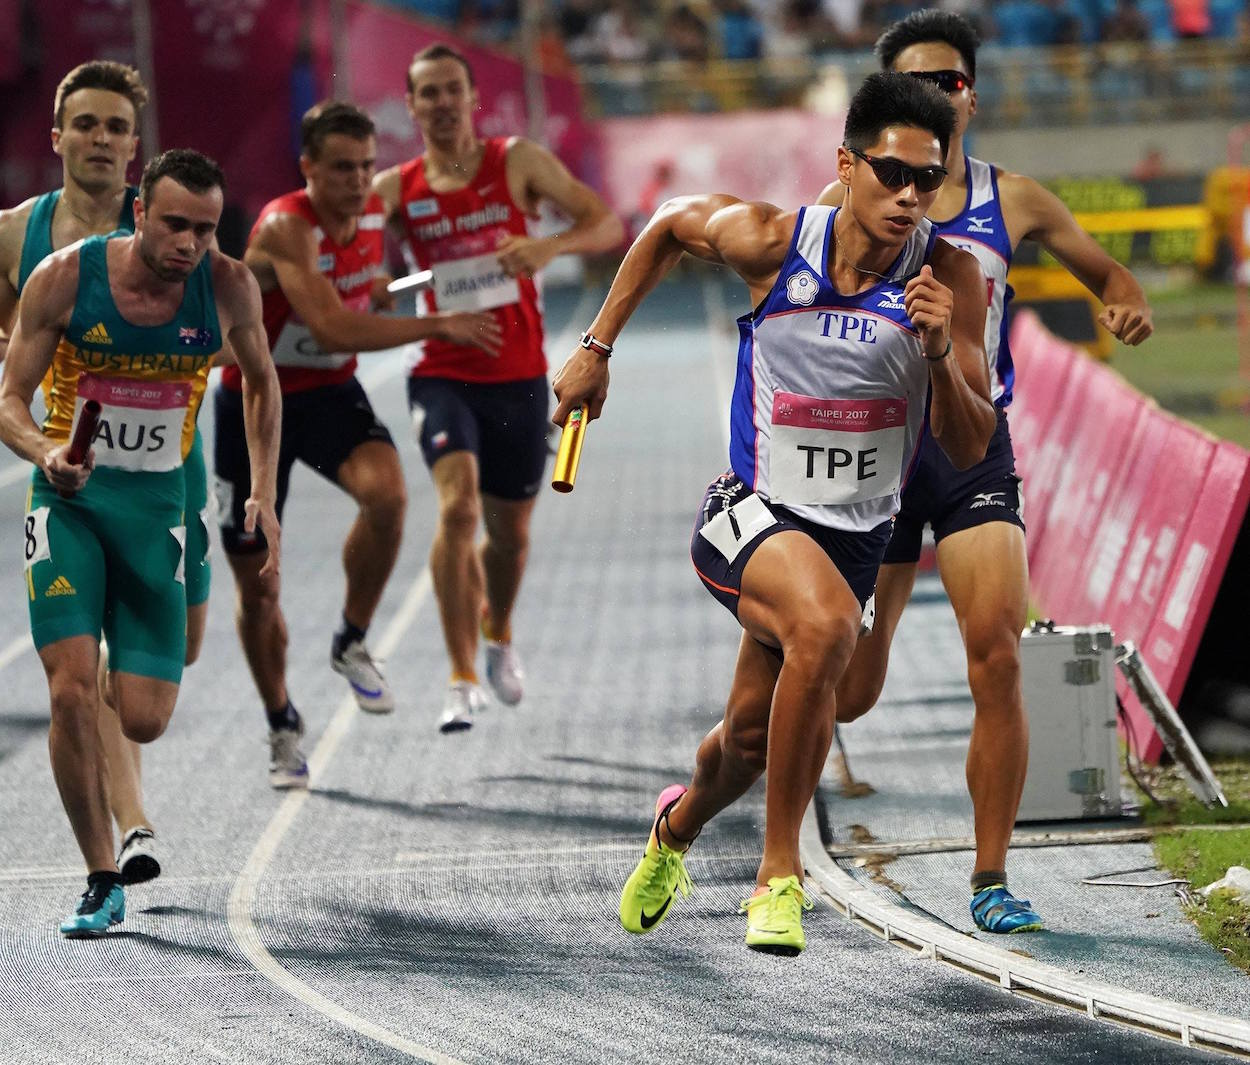 Chinese Pressure Causes Taiwan To Lose Hosting Rights For East Asian Youth Games